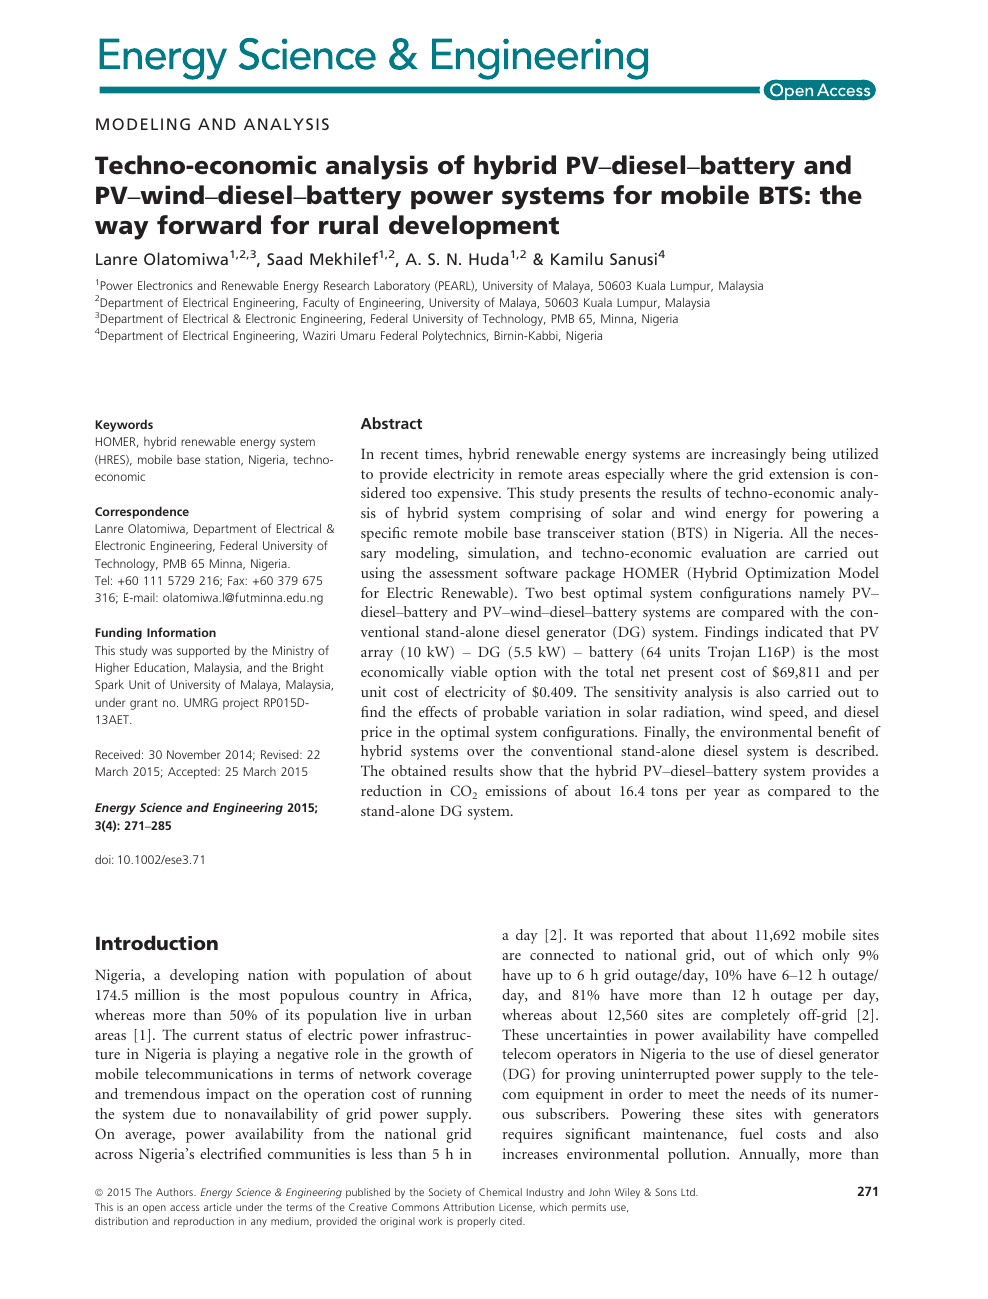 Techno-economic analysis of hybrid PV-diesel-battery and PV-wind